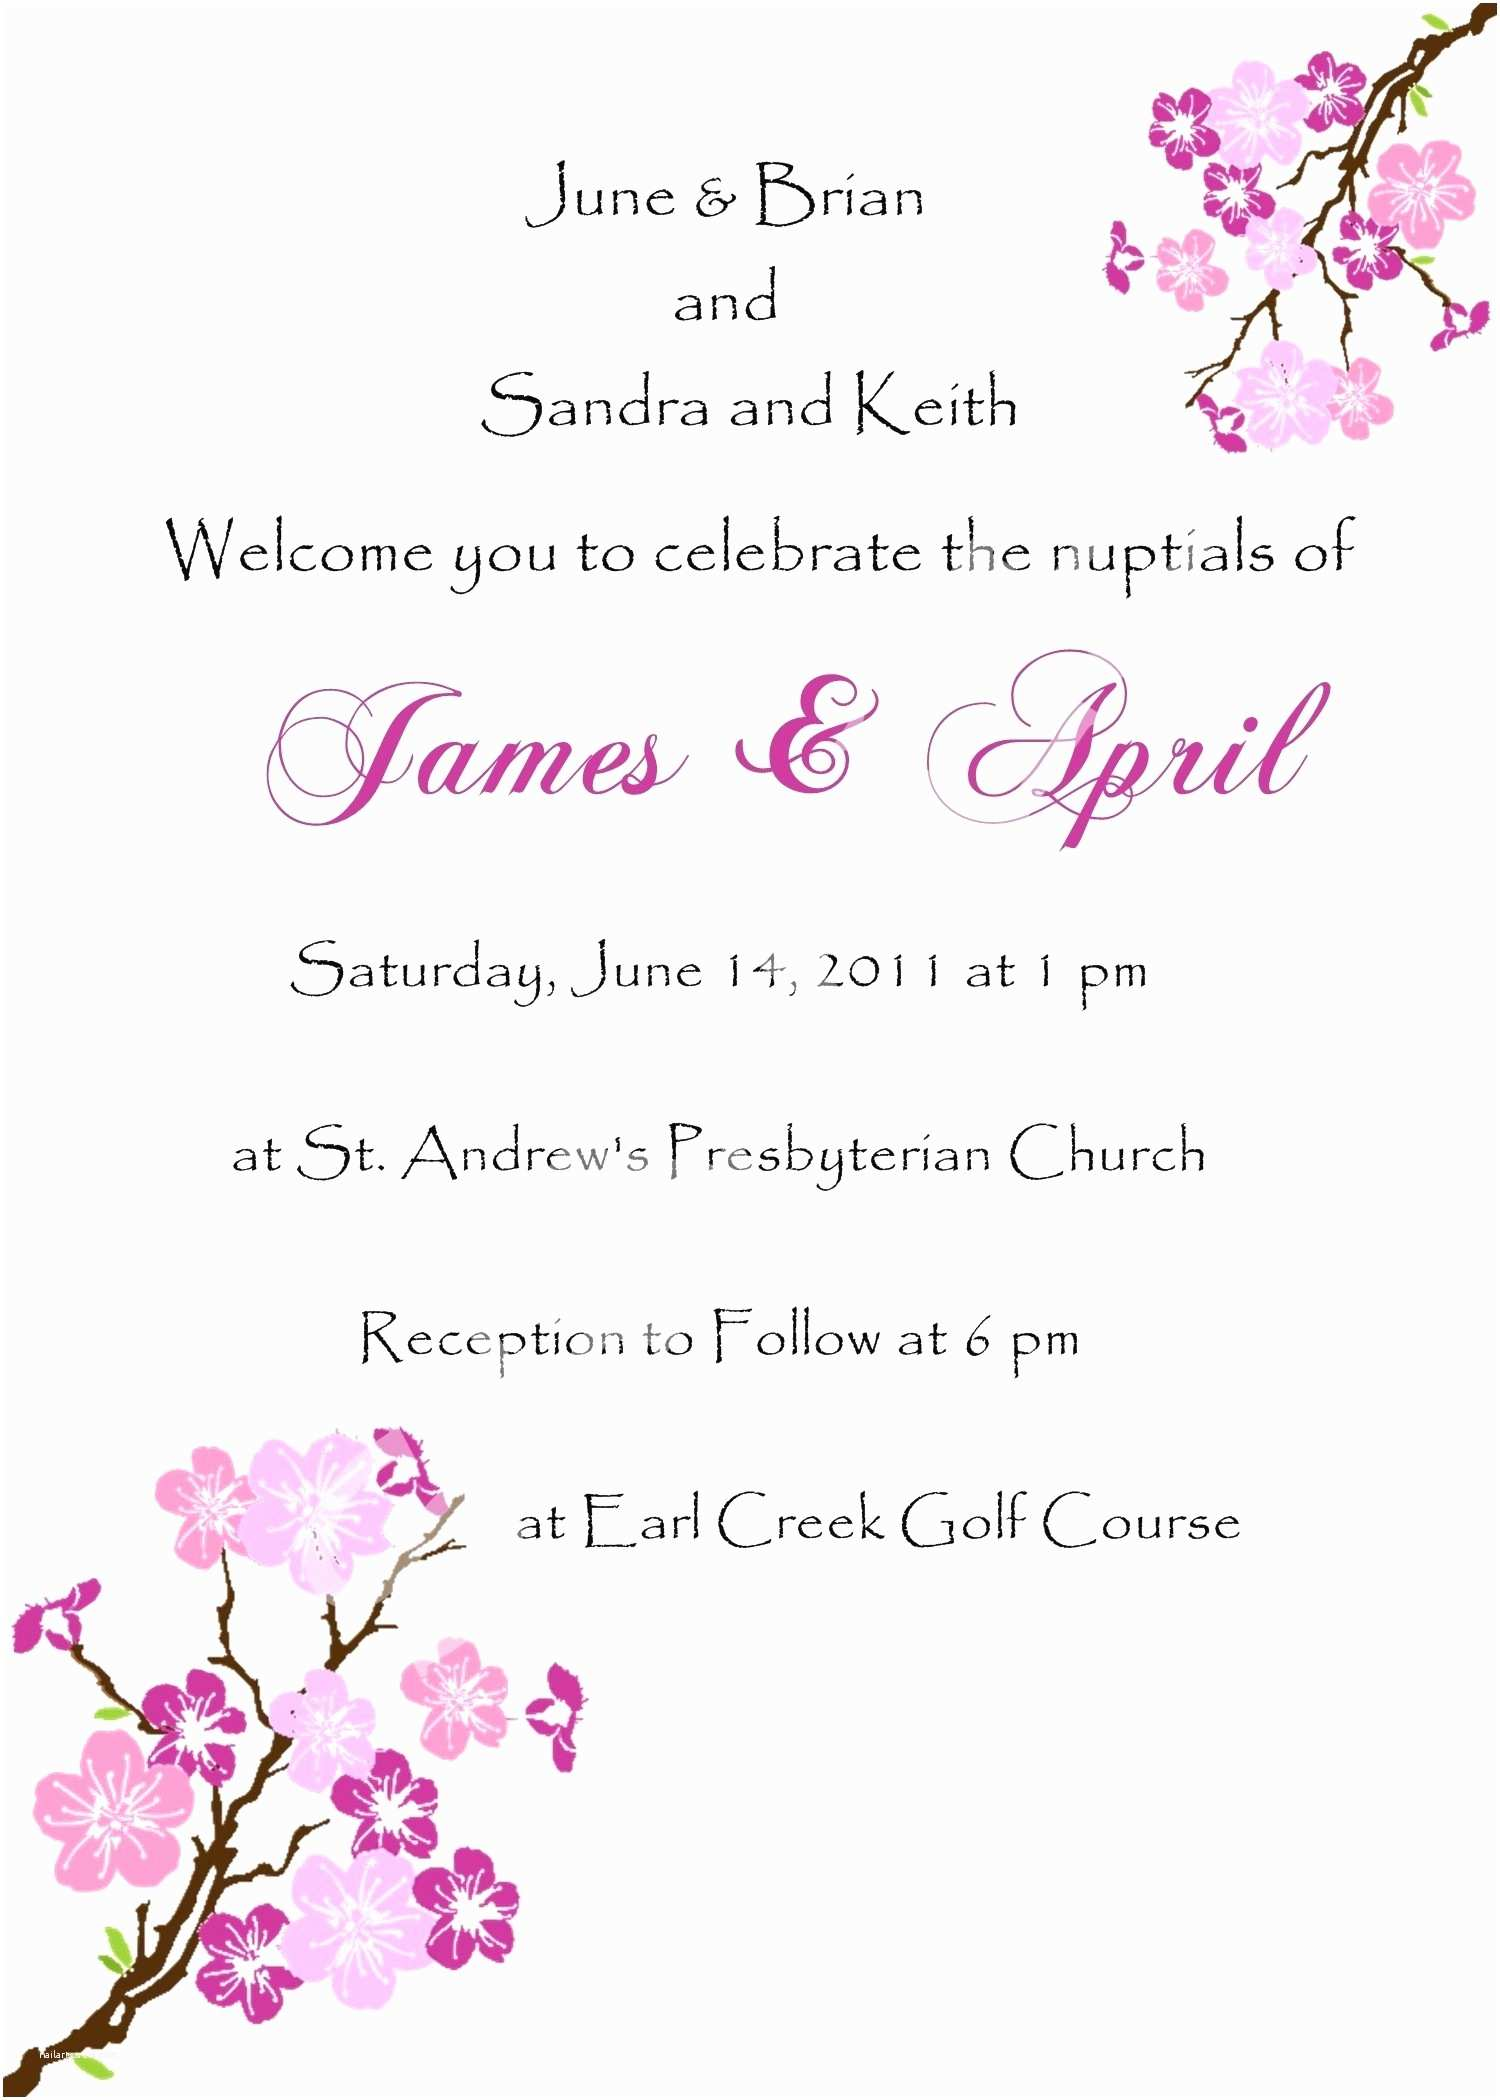 Wedding Invitation Sms Sample Wedding Invitation Via Sms Best Wedding Invitation